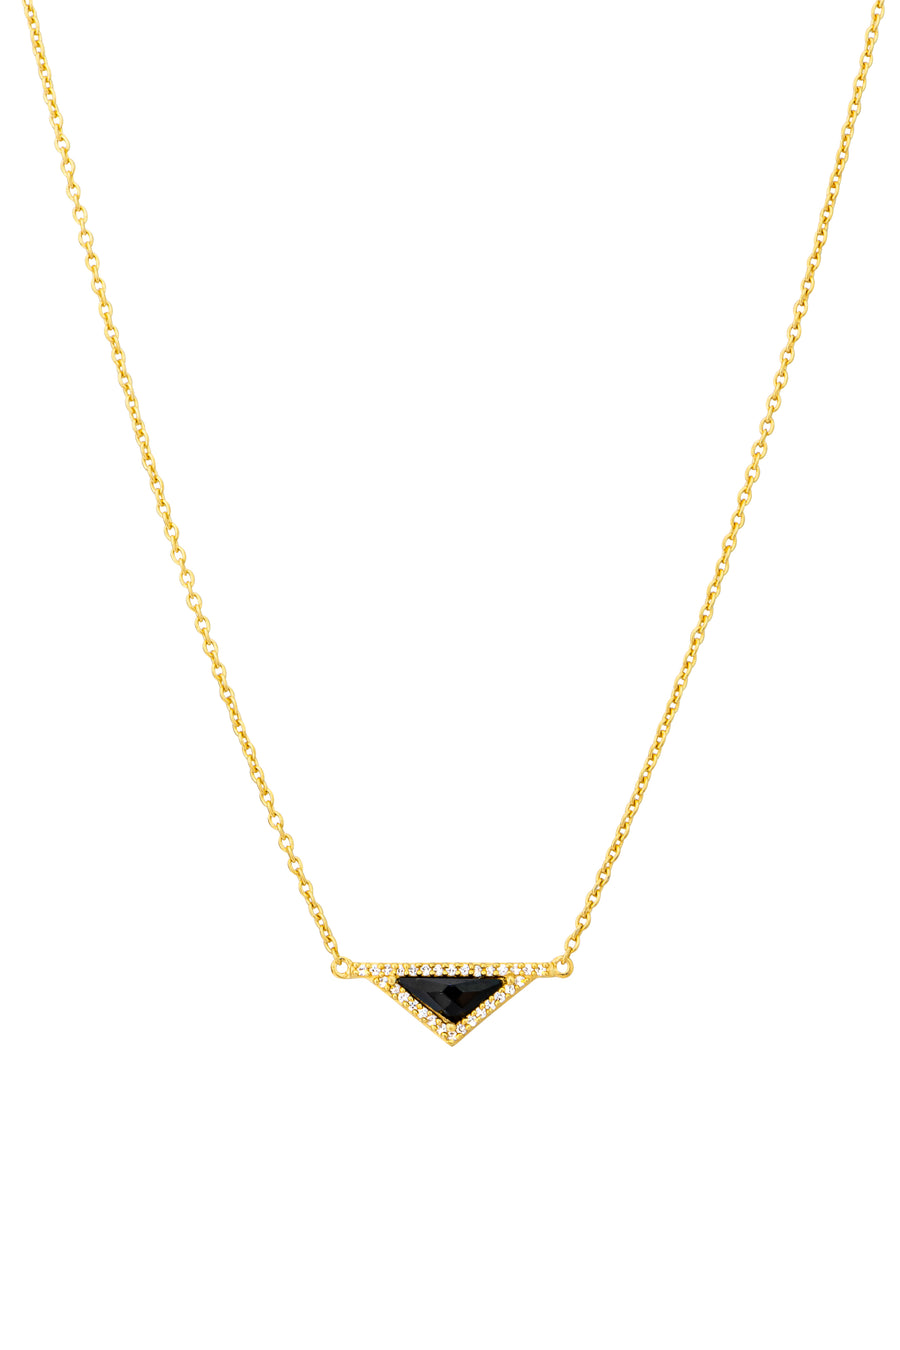 16k Gold Plate Black Onyx and CZ Necklace (813768)